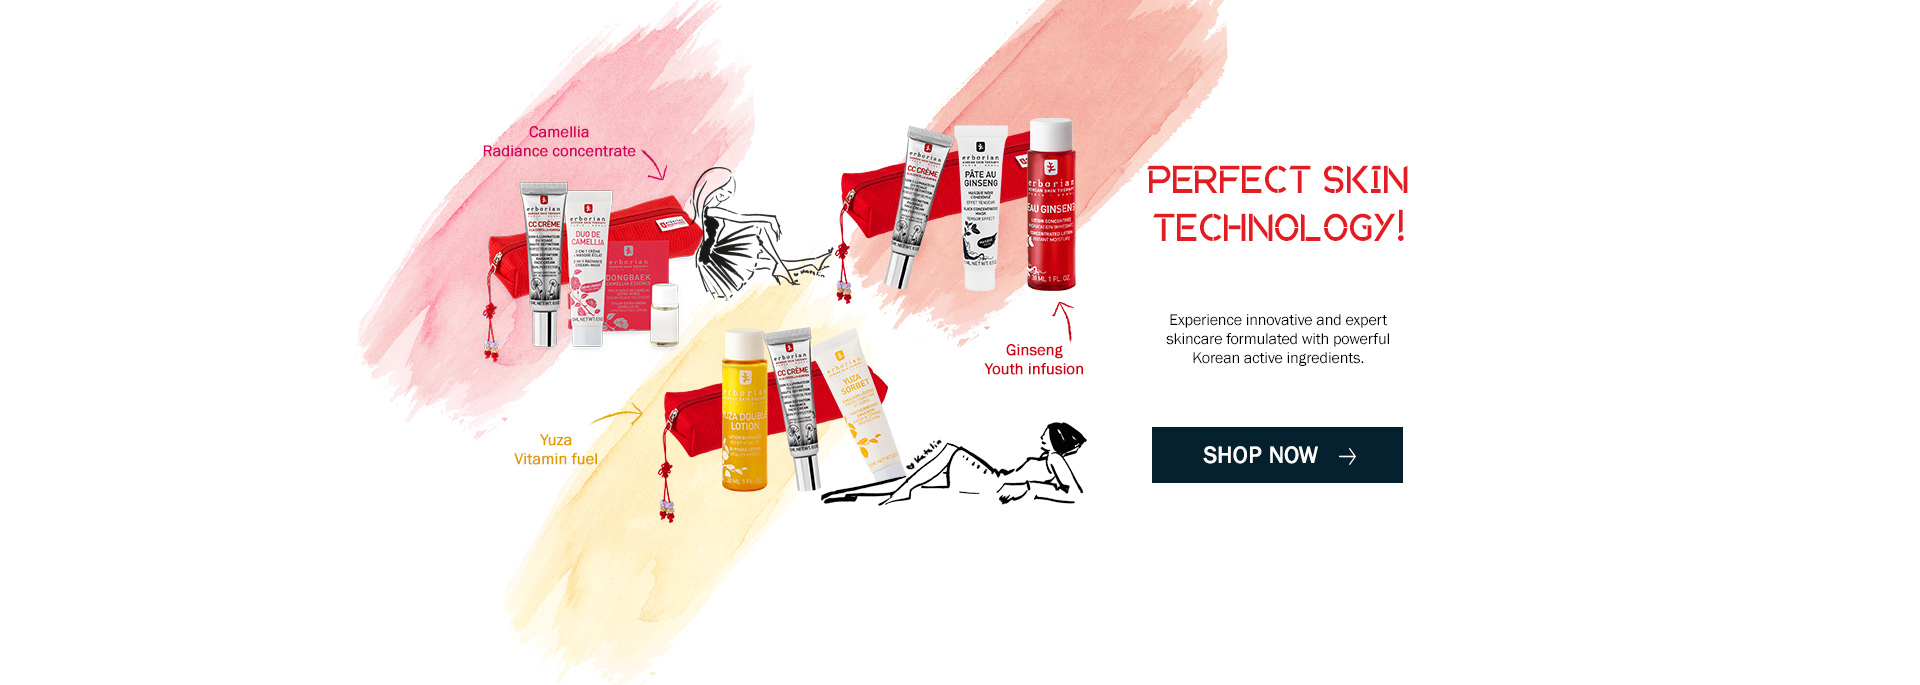 Pick your Technology Kit and discover Erborian rituals